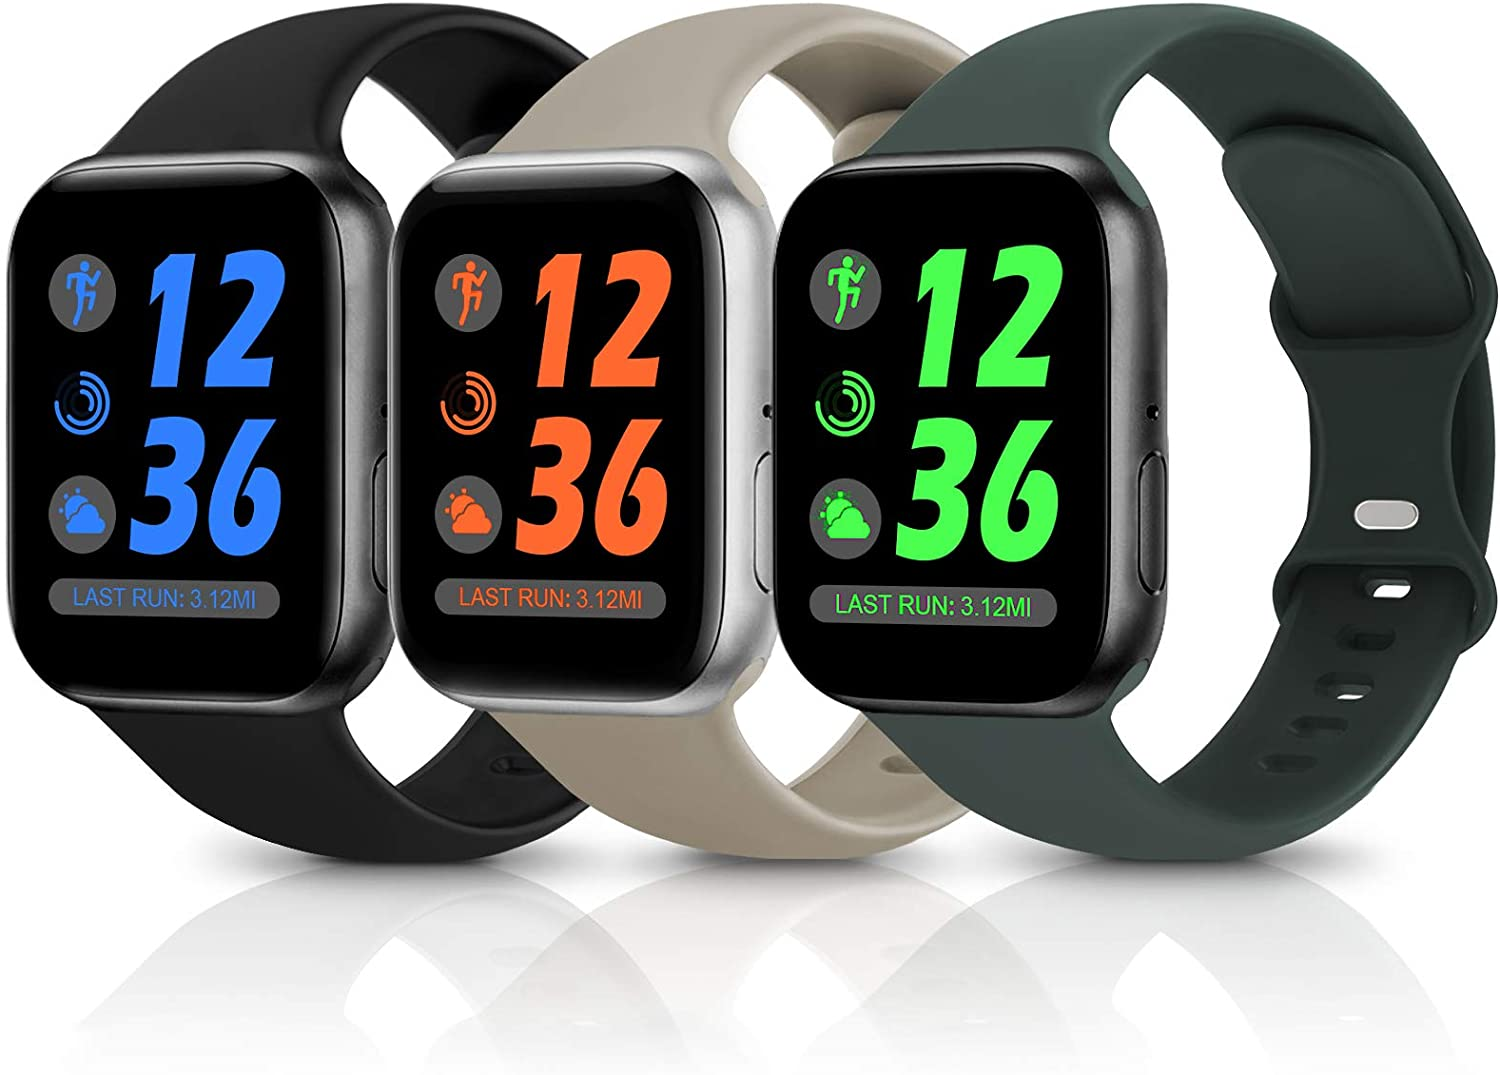 Sport Silicone Band Compatible with Apple Watch Bands 38mm 40mm 42mm 44mm,Soft Replacement Wristbands for iWatch Series 1/2/3/4/5/6/SE,Women Men,3 Pack(Black/Walnut/Olive Green,42mm/44mm-M/L)